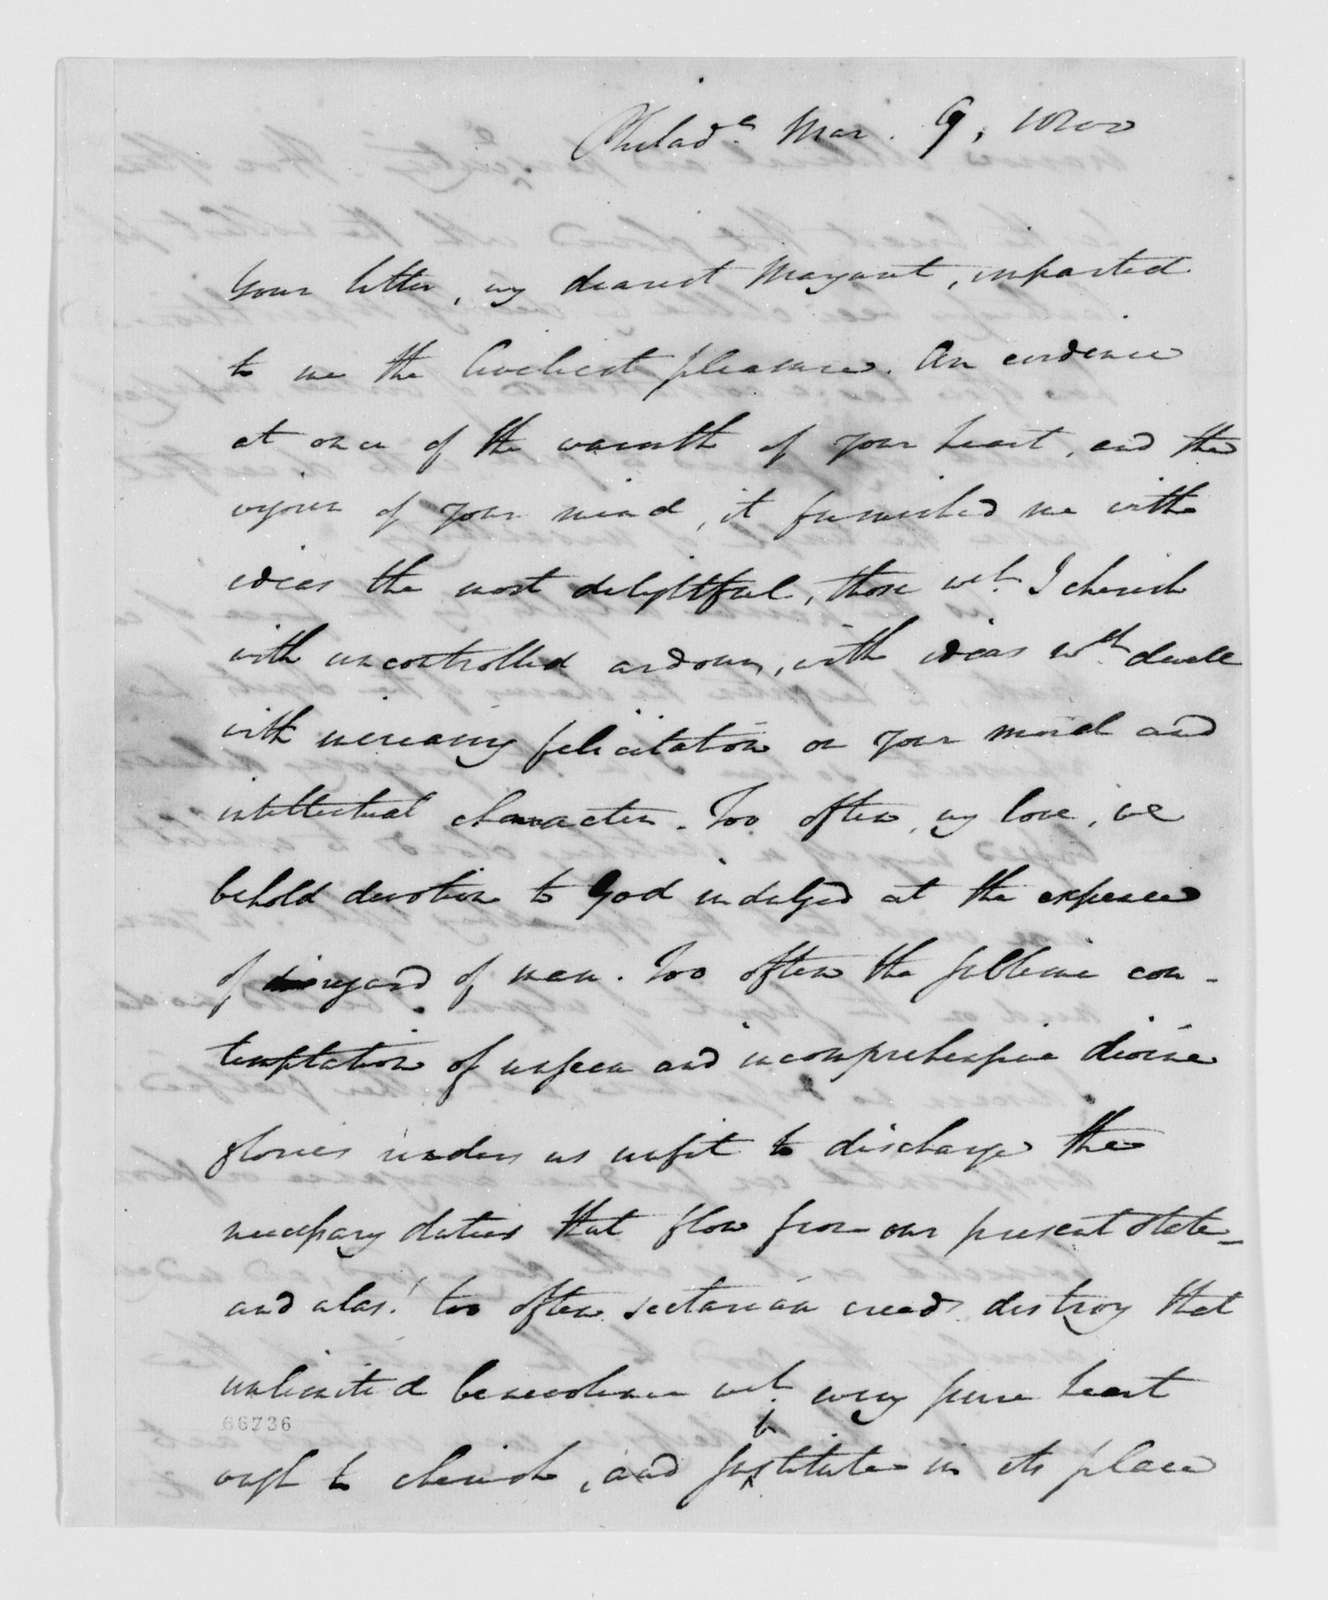 Margaret Bayard Smith Papers: Family Correspondence, 1789-1842; Smith, Samuel Harrison (husband); 1800, Jan.-Apr